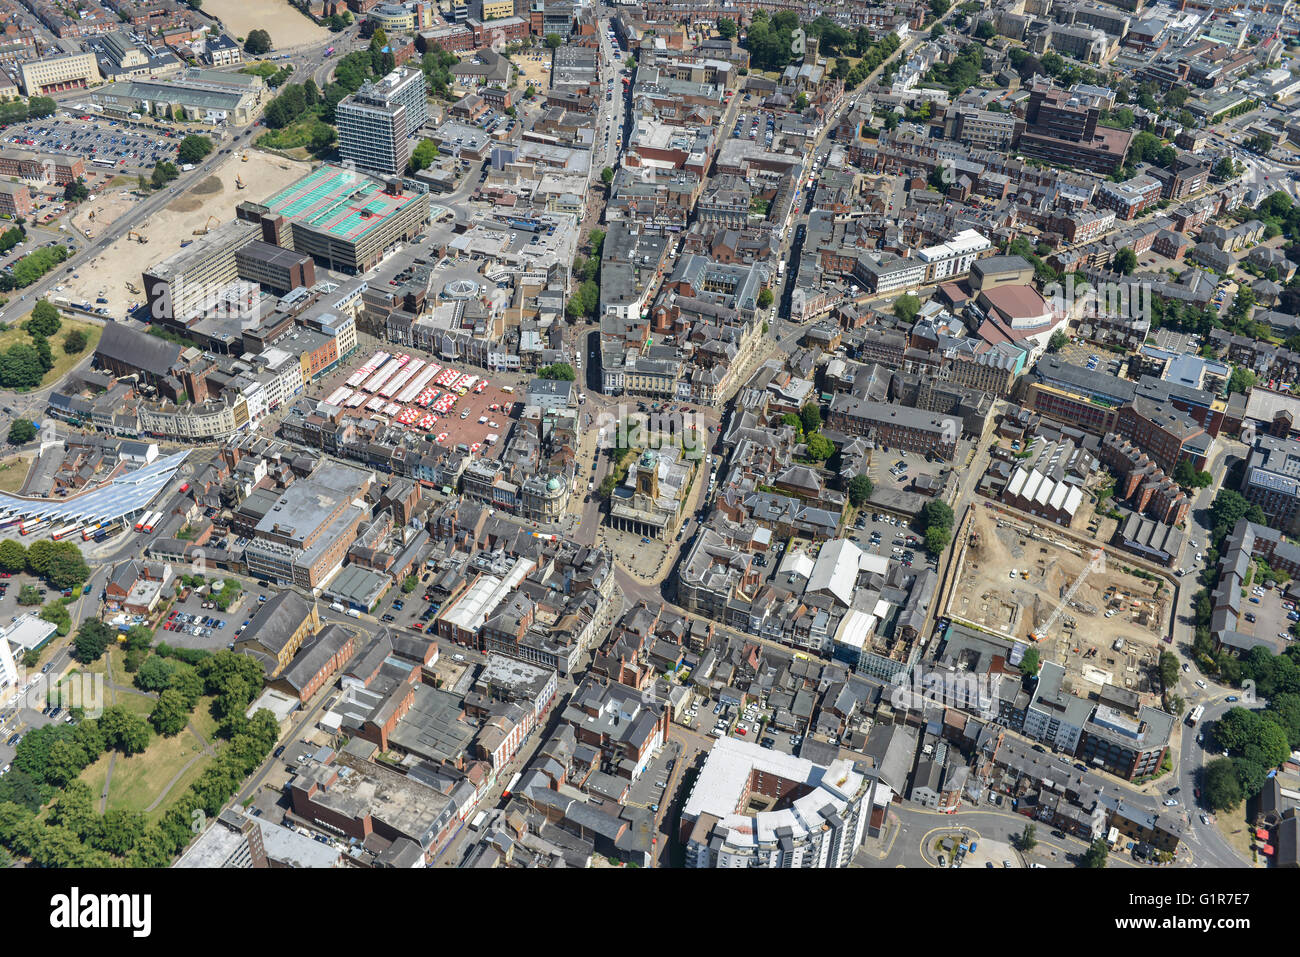 An aerial view of Northampton town centre - Stock Image